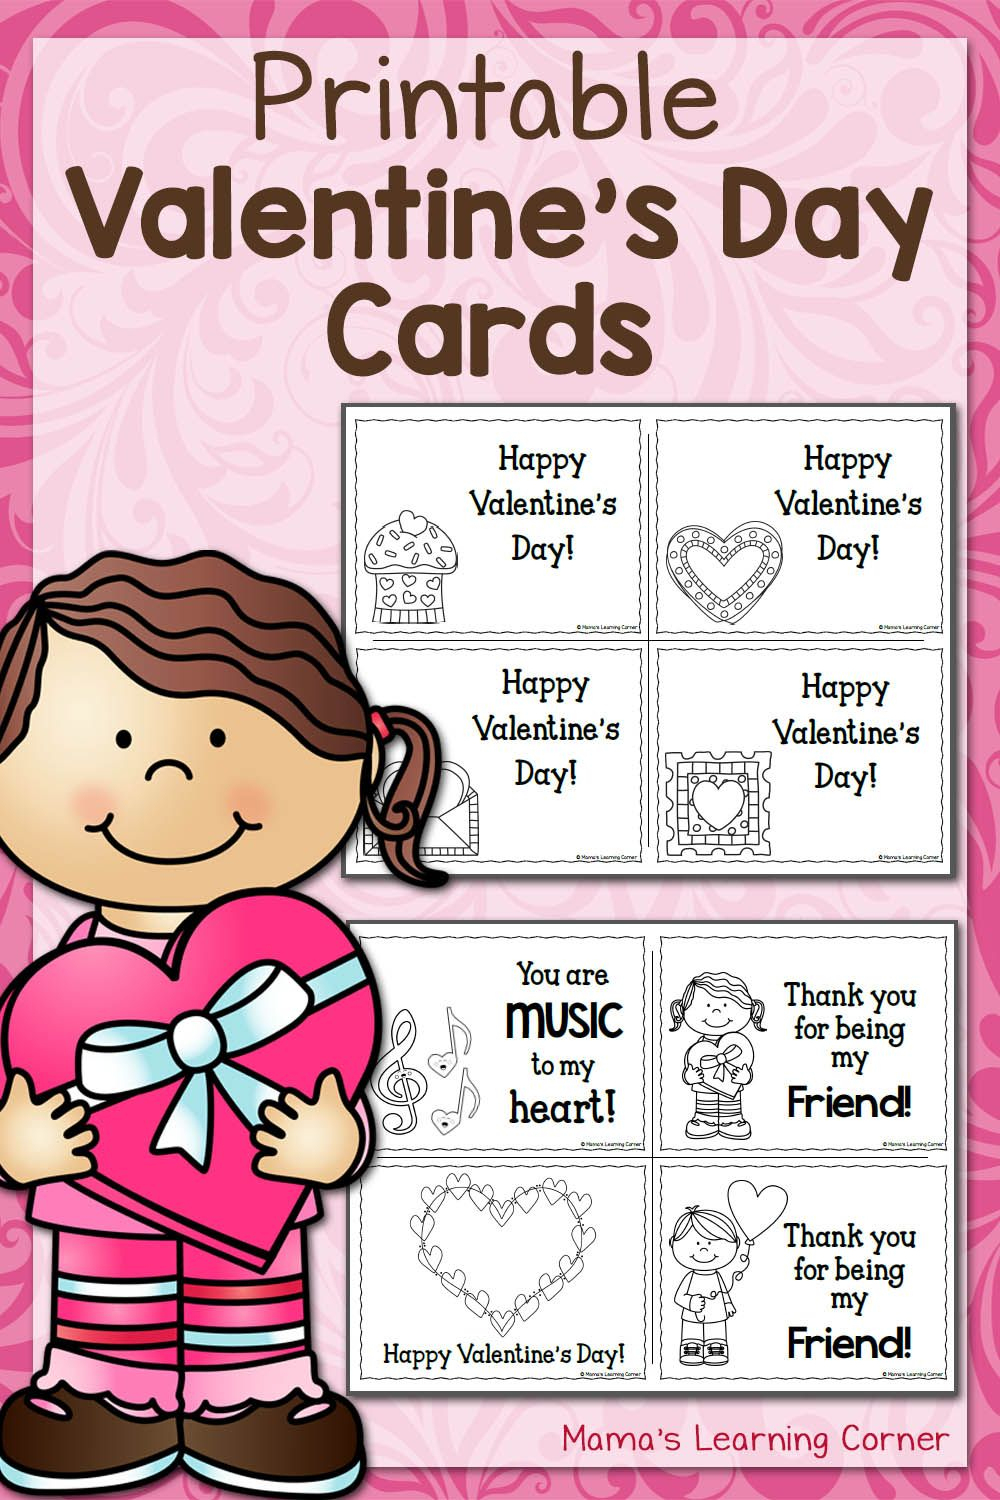 Printable Valentine's Day Cards   Best Of Mama's Learning Corner - Free Printable Valentines Day Cards Kids